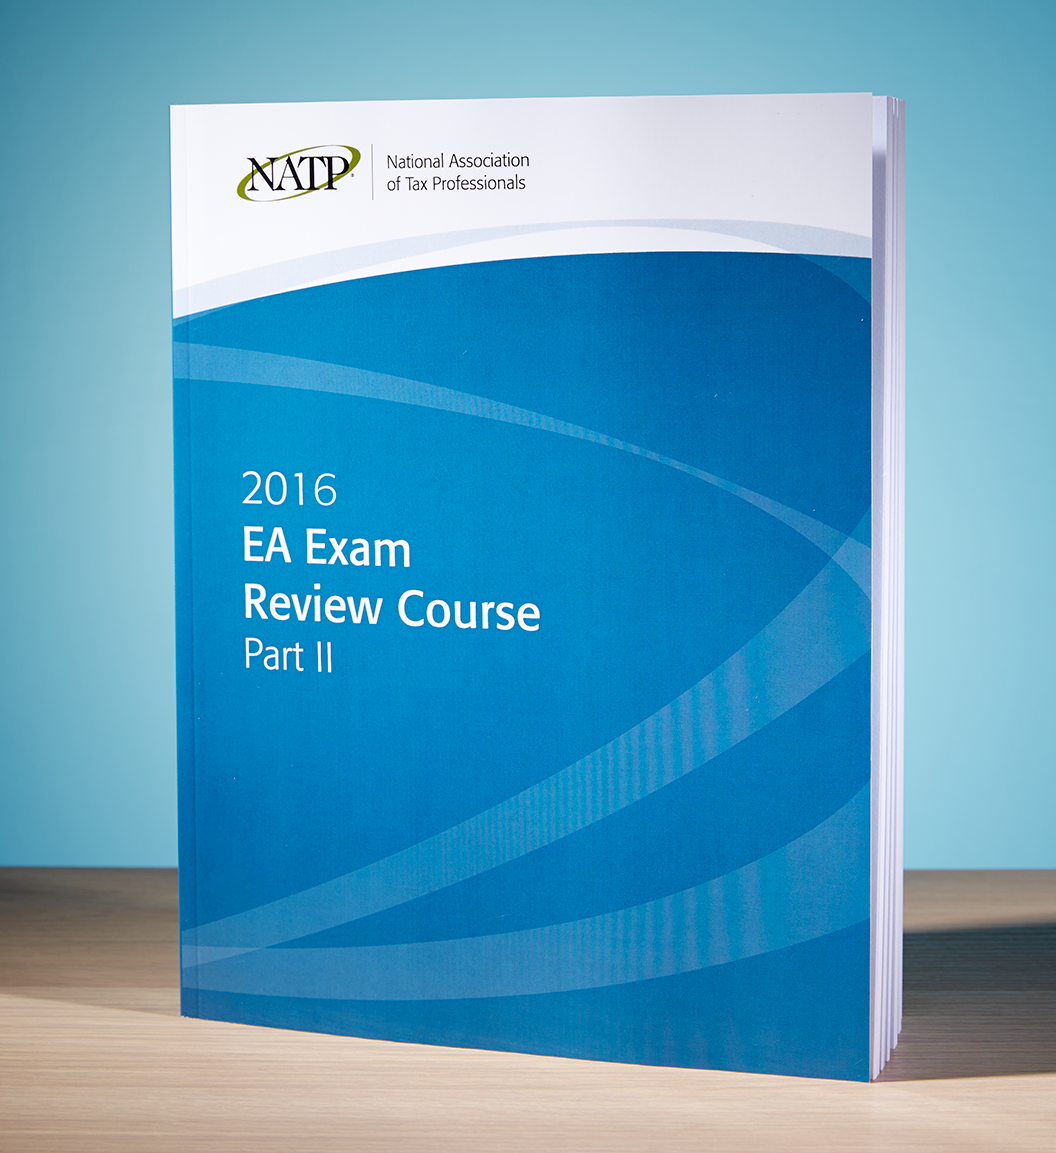 EA Exam Review Course Part II Textbook (2016) - #3604